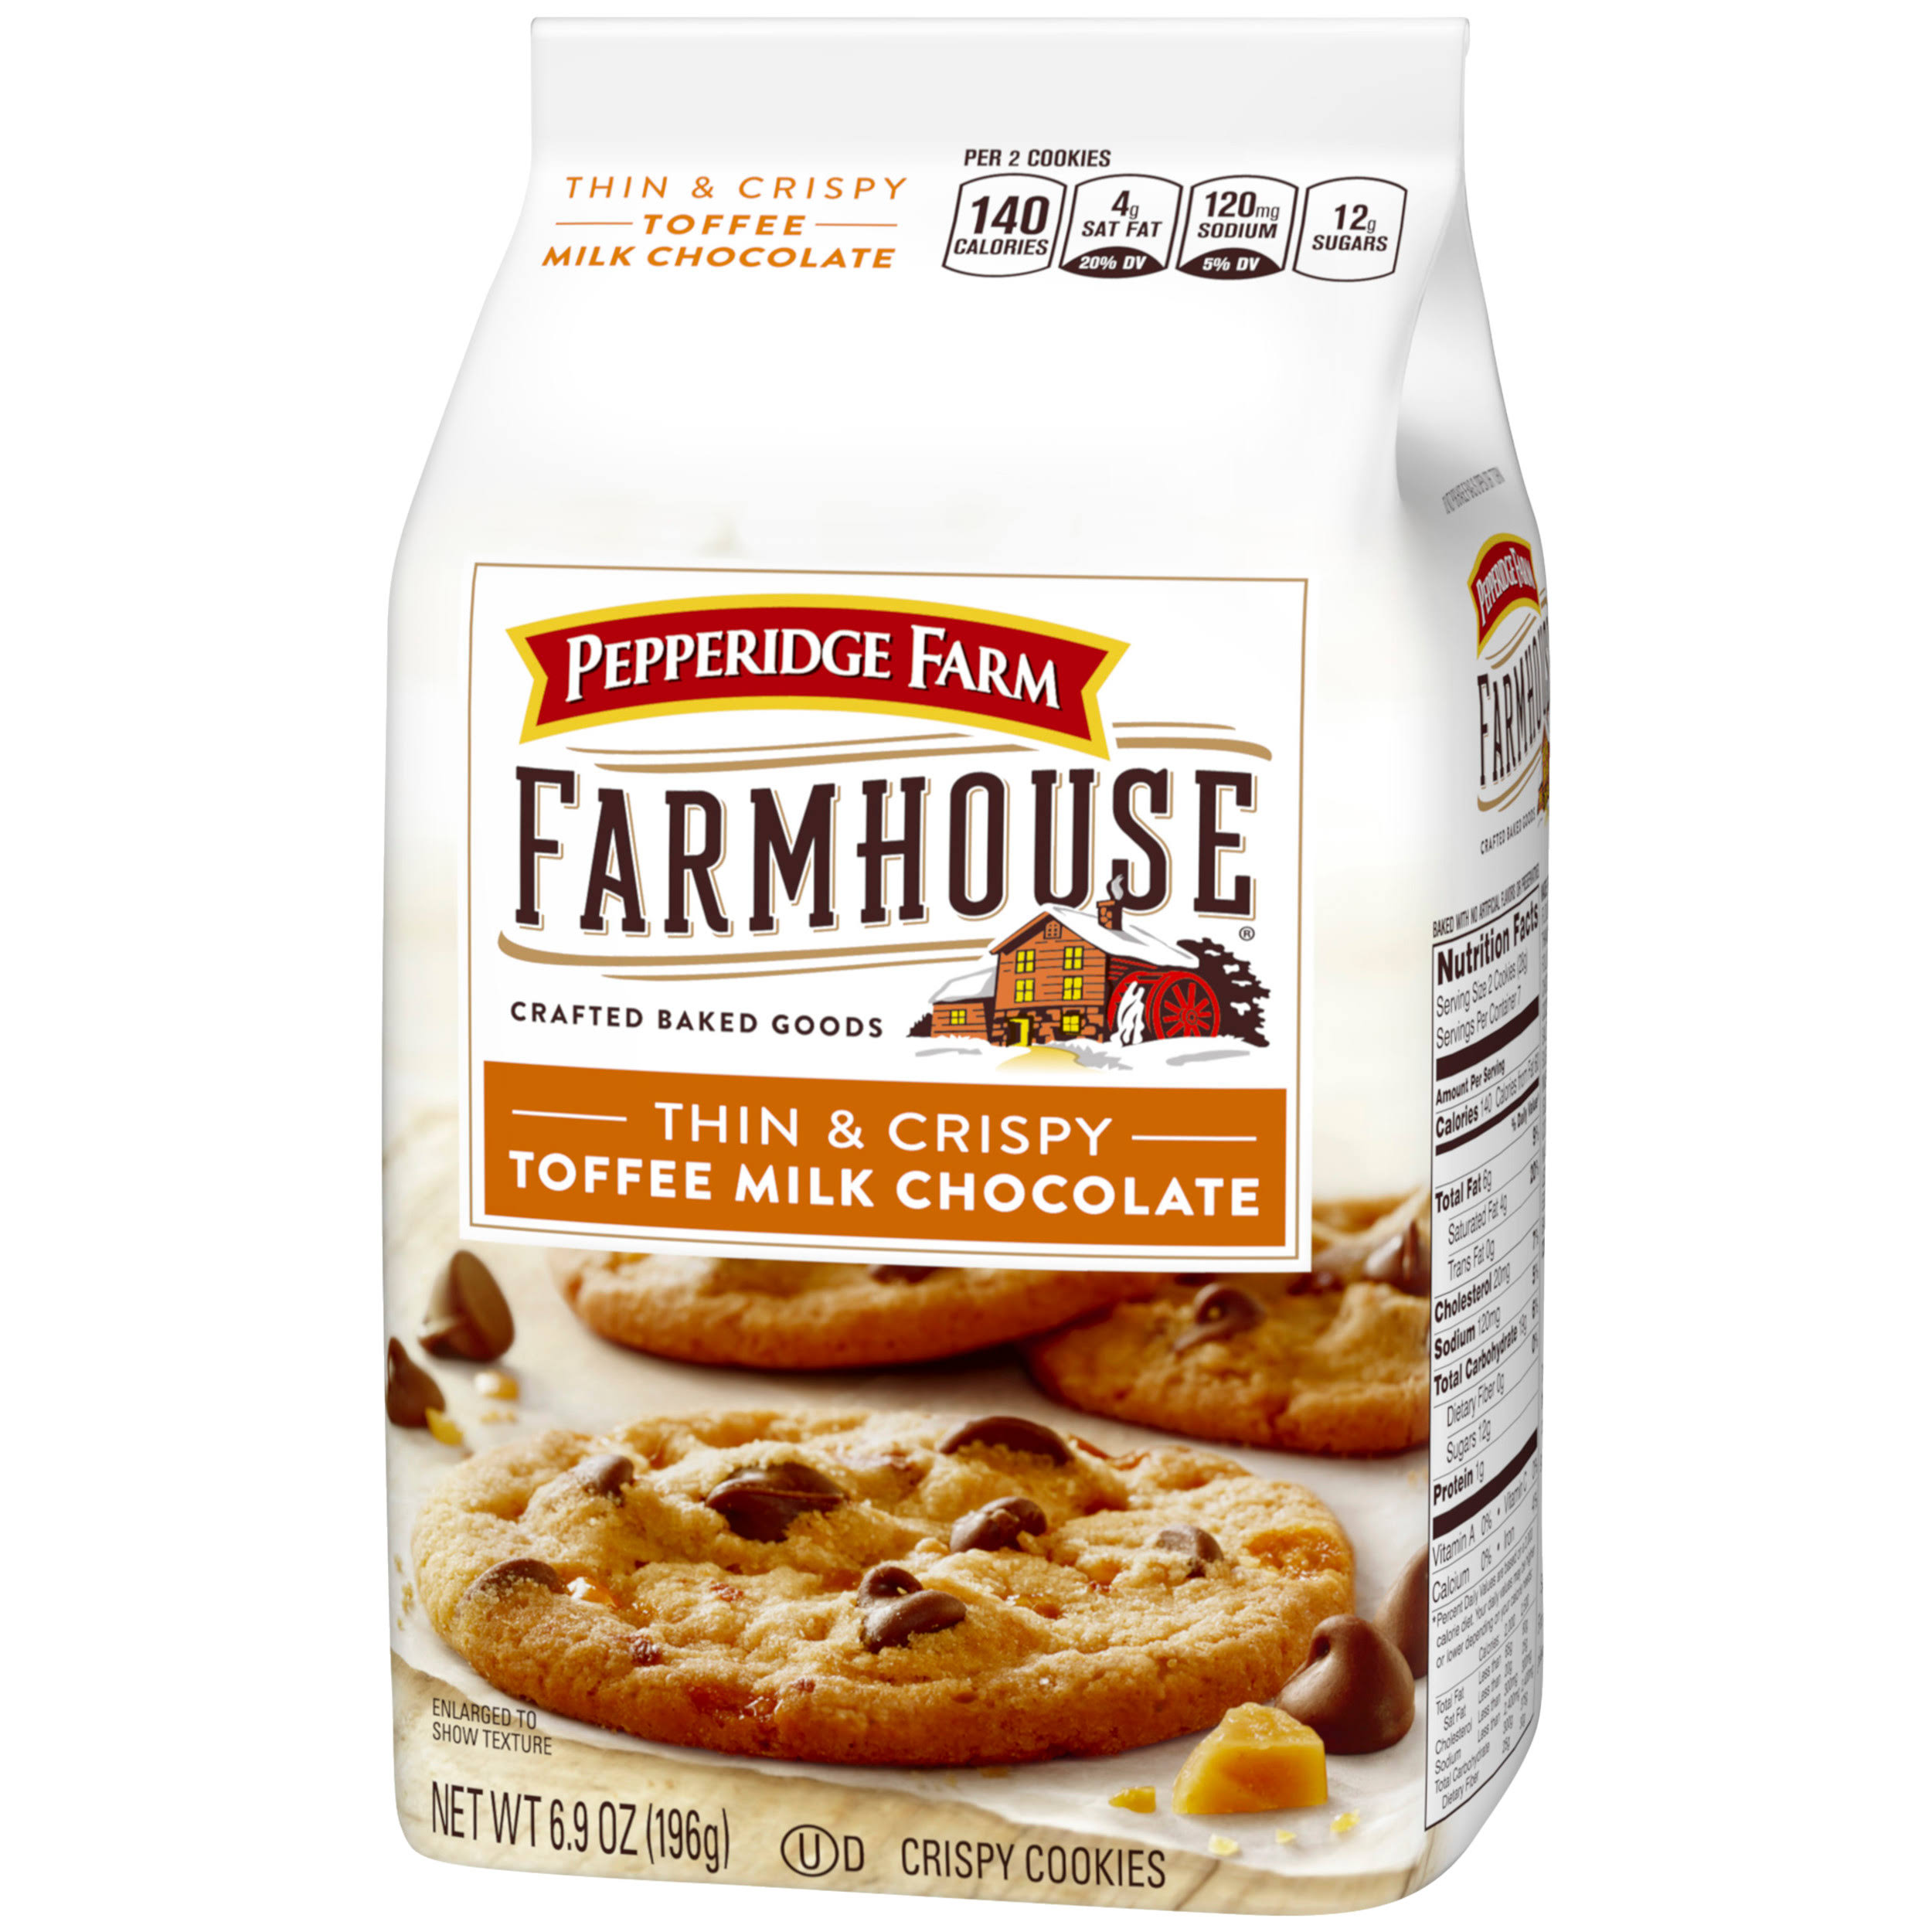 Pepperidge Farm Cookies, Thin & Crispy, Toffee Milk Chocolate - 6.9 oz